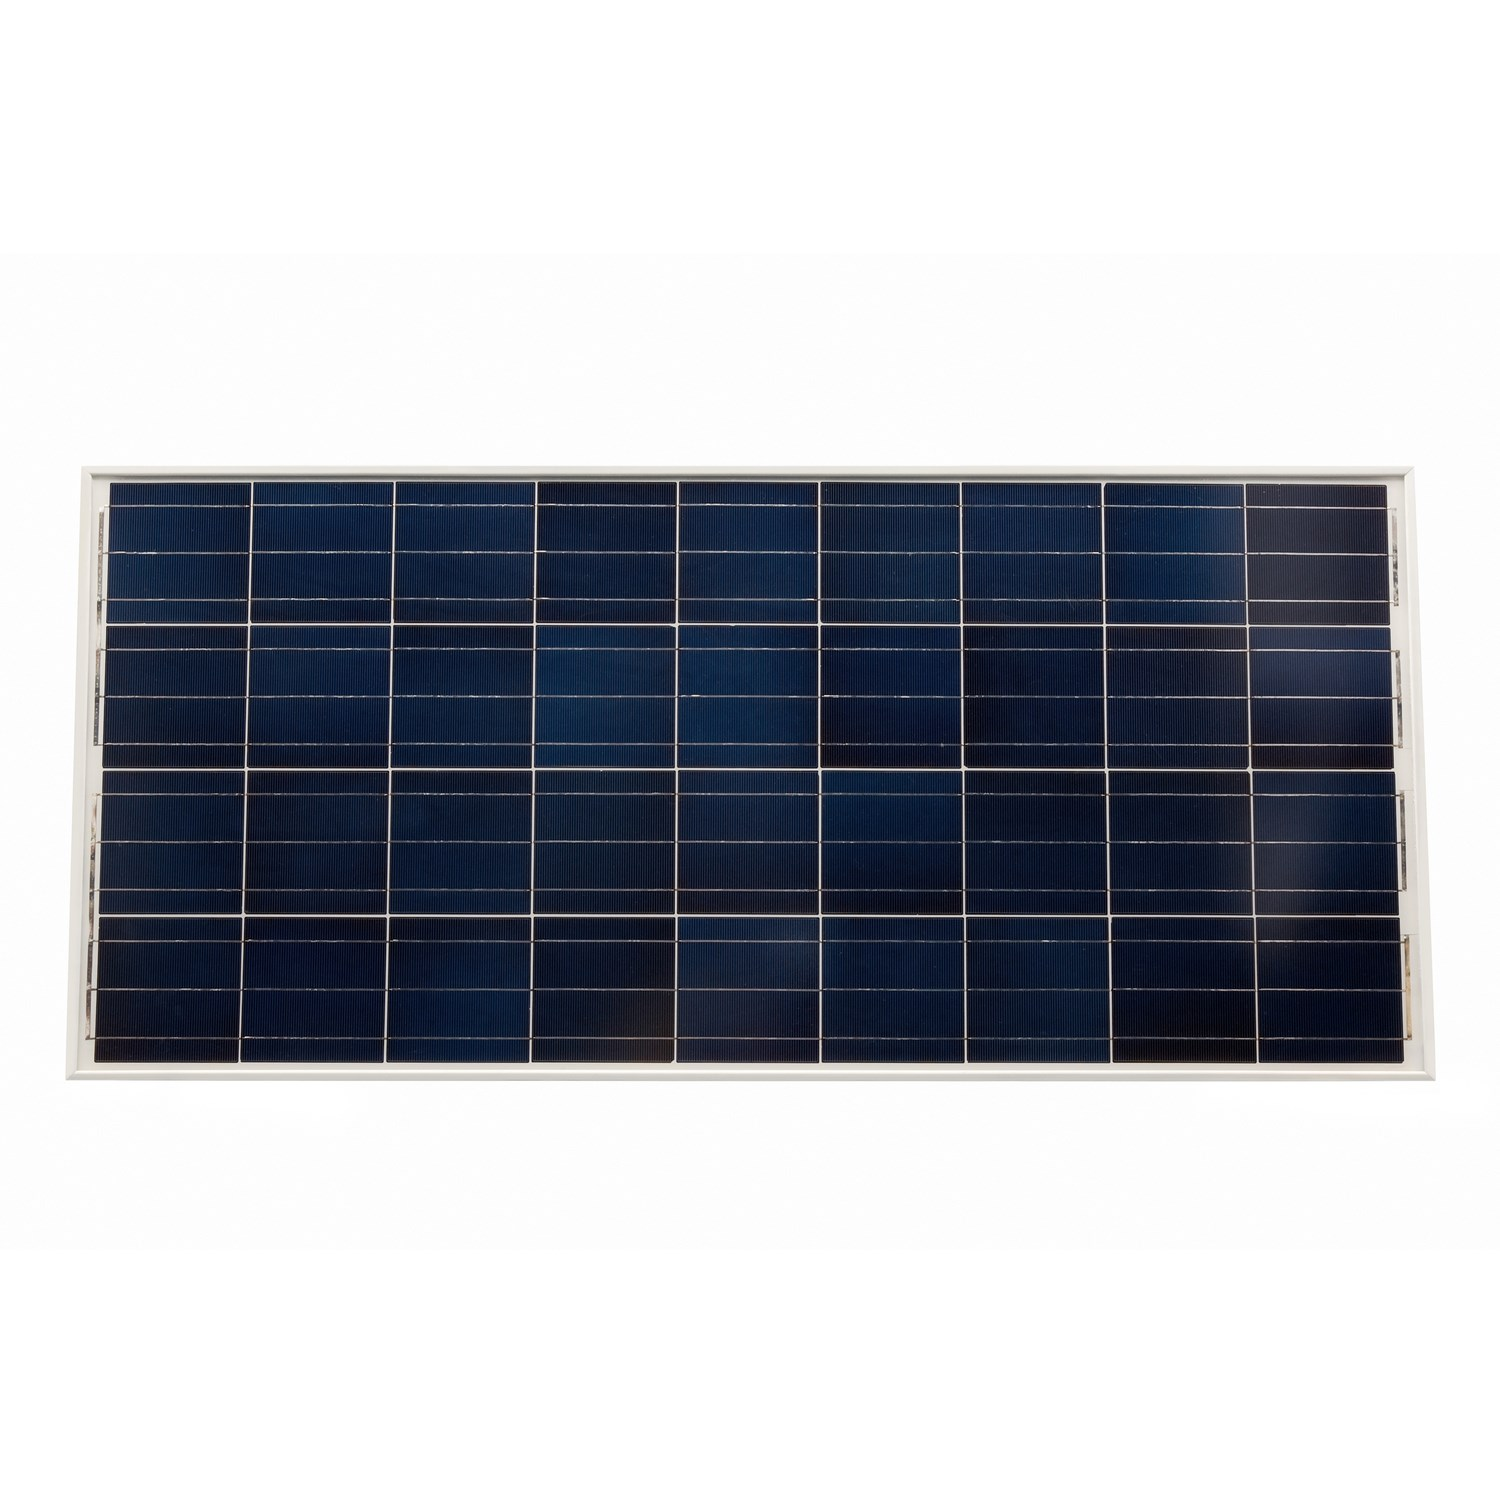 Victron Solar Panel 115W-12V Poly 1015x668x30mm series 4a